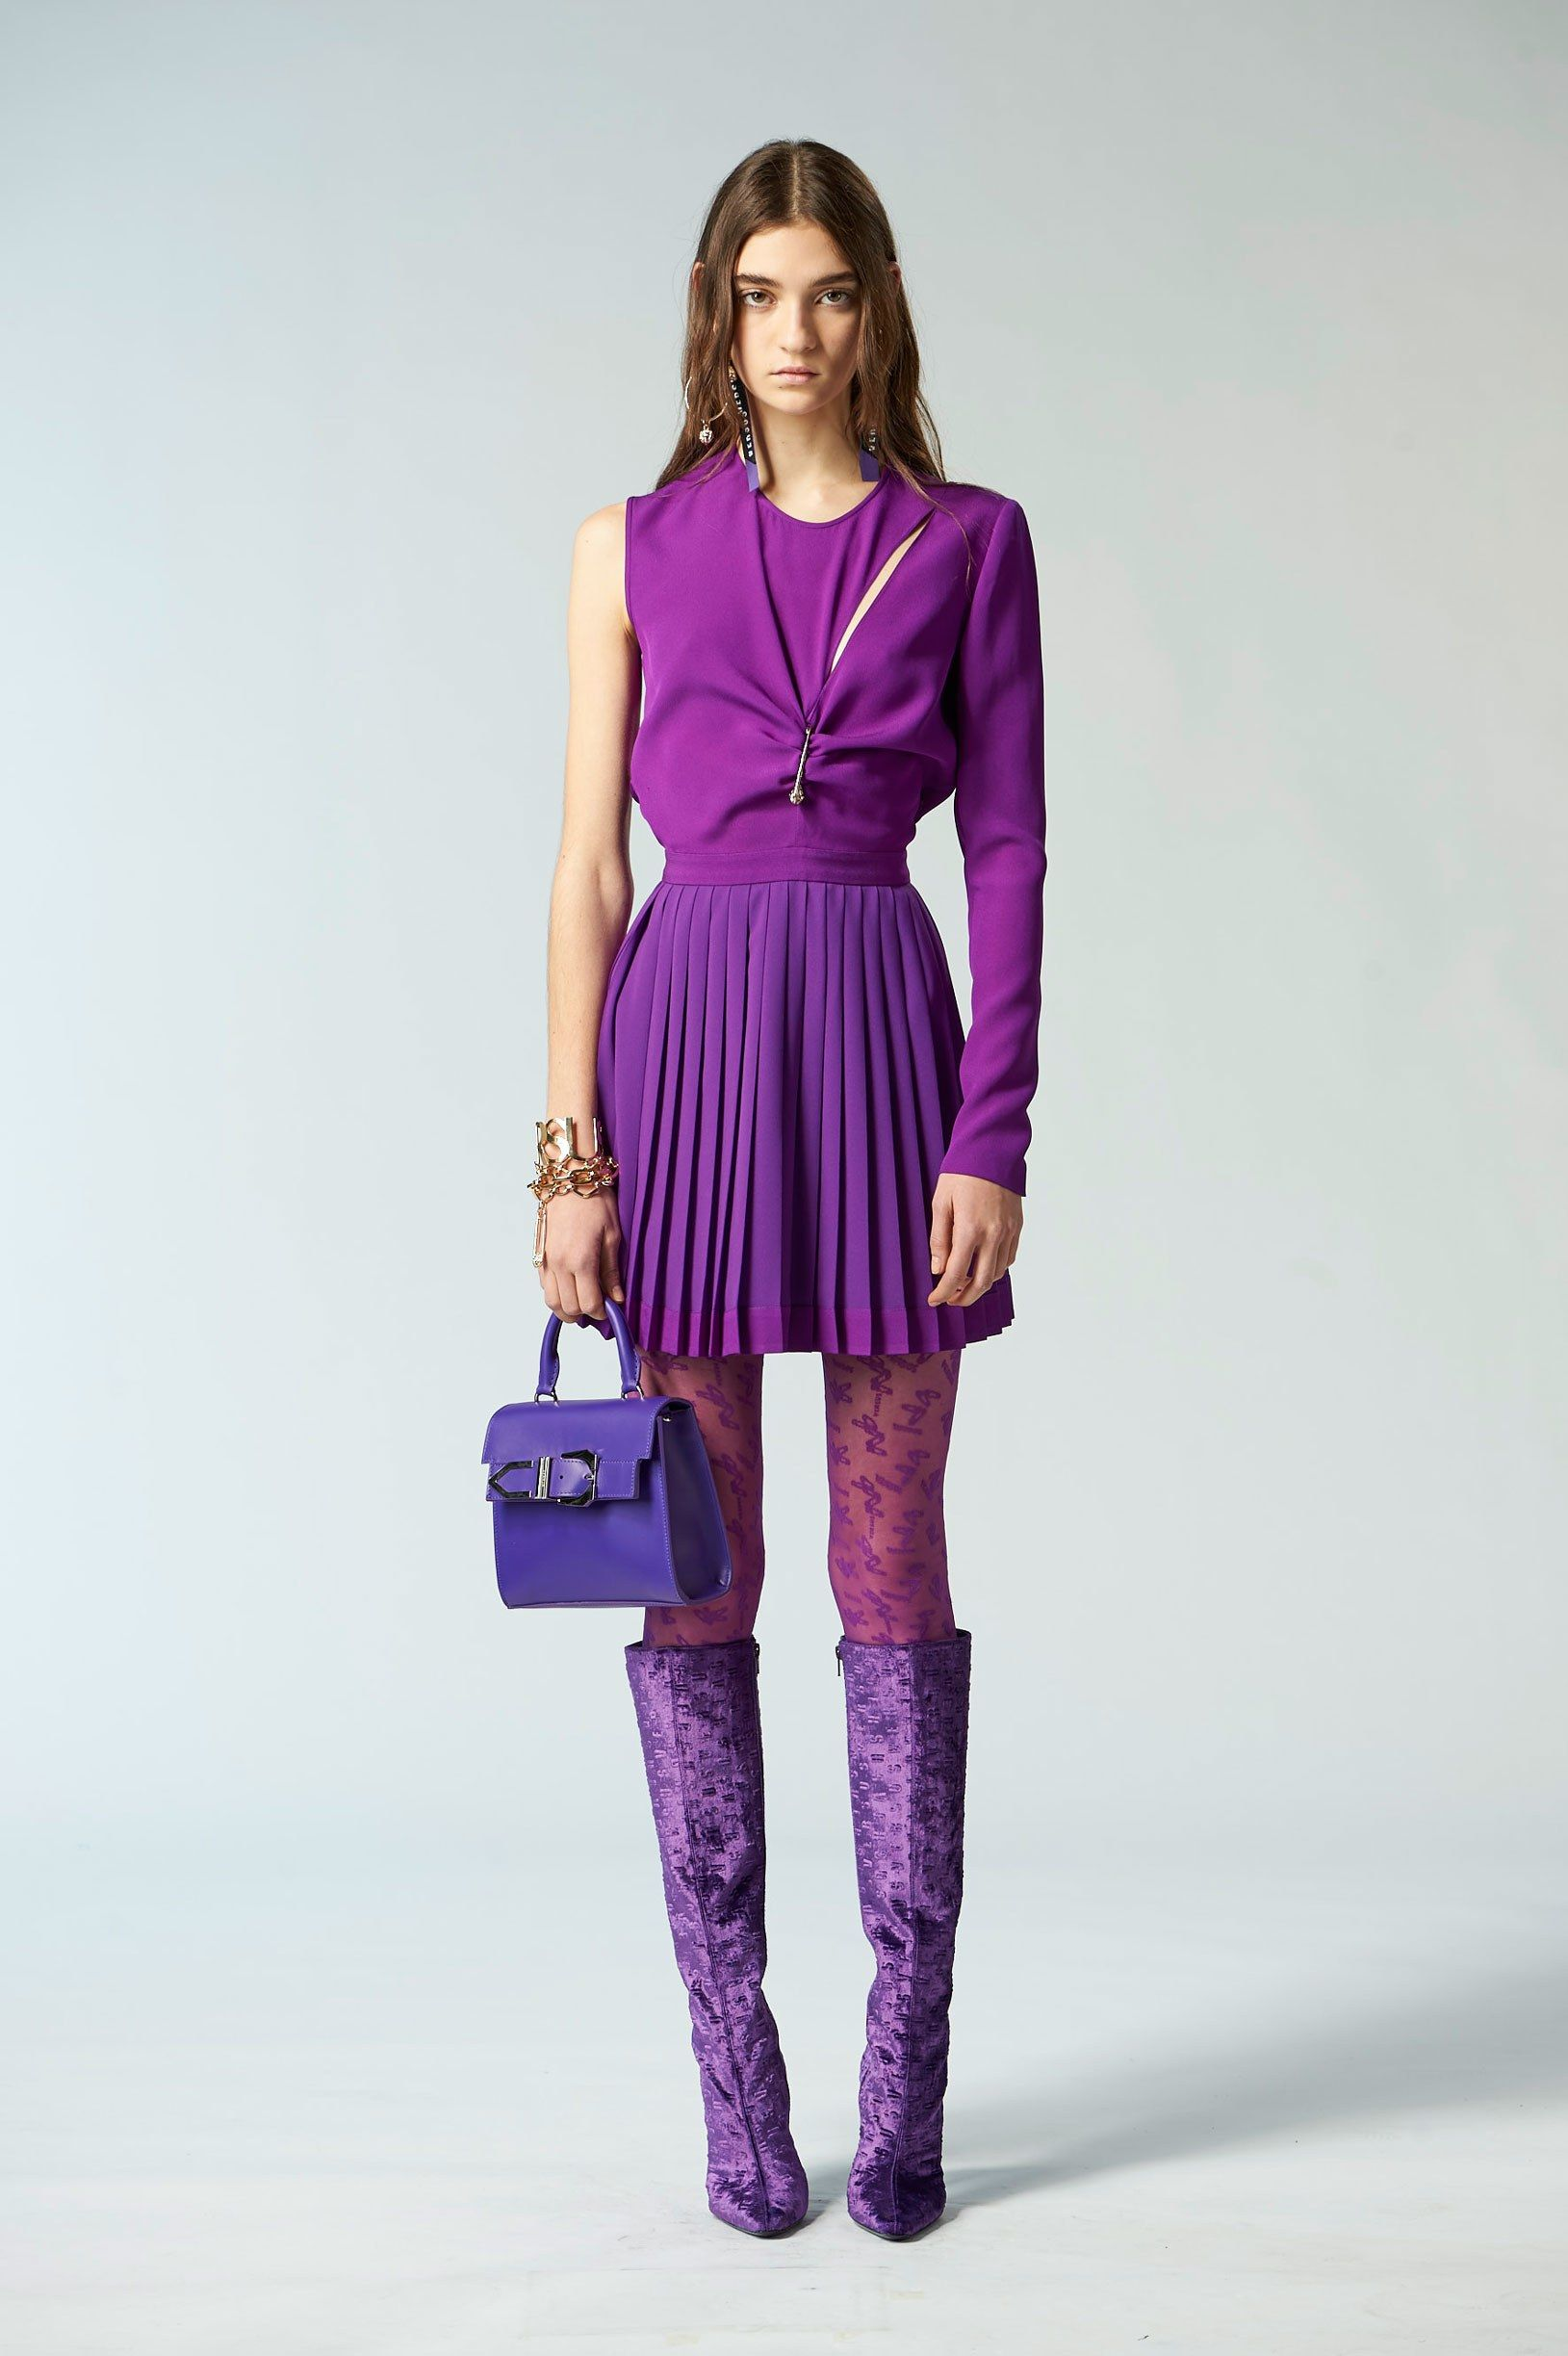 Leather Statement Clutch - The Ultra Violet Trend by VIDA VIDA OYaCqNus8x